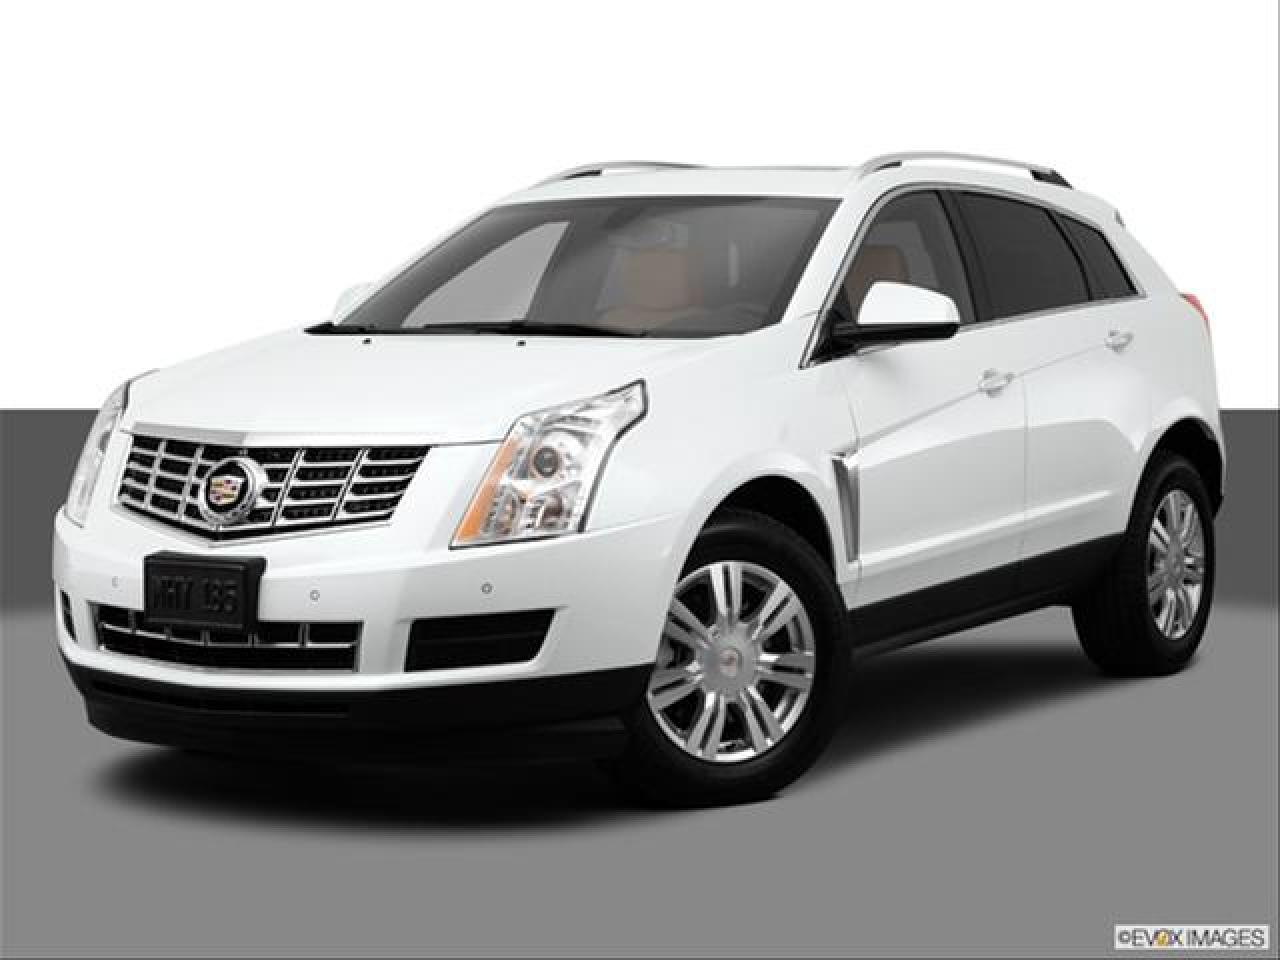 2014 cadillac srx information and photos zombiedrive. Black Bedroom Furniture Sets. Home Design Ideas